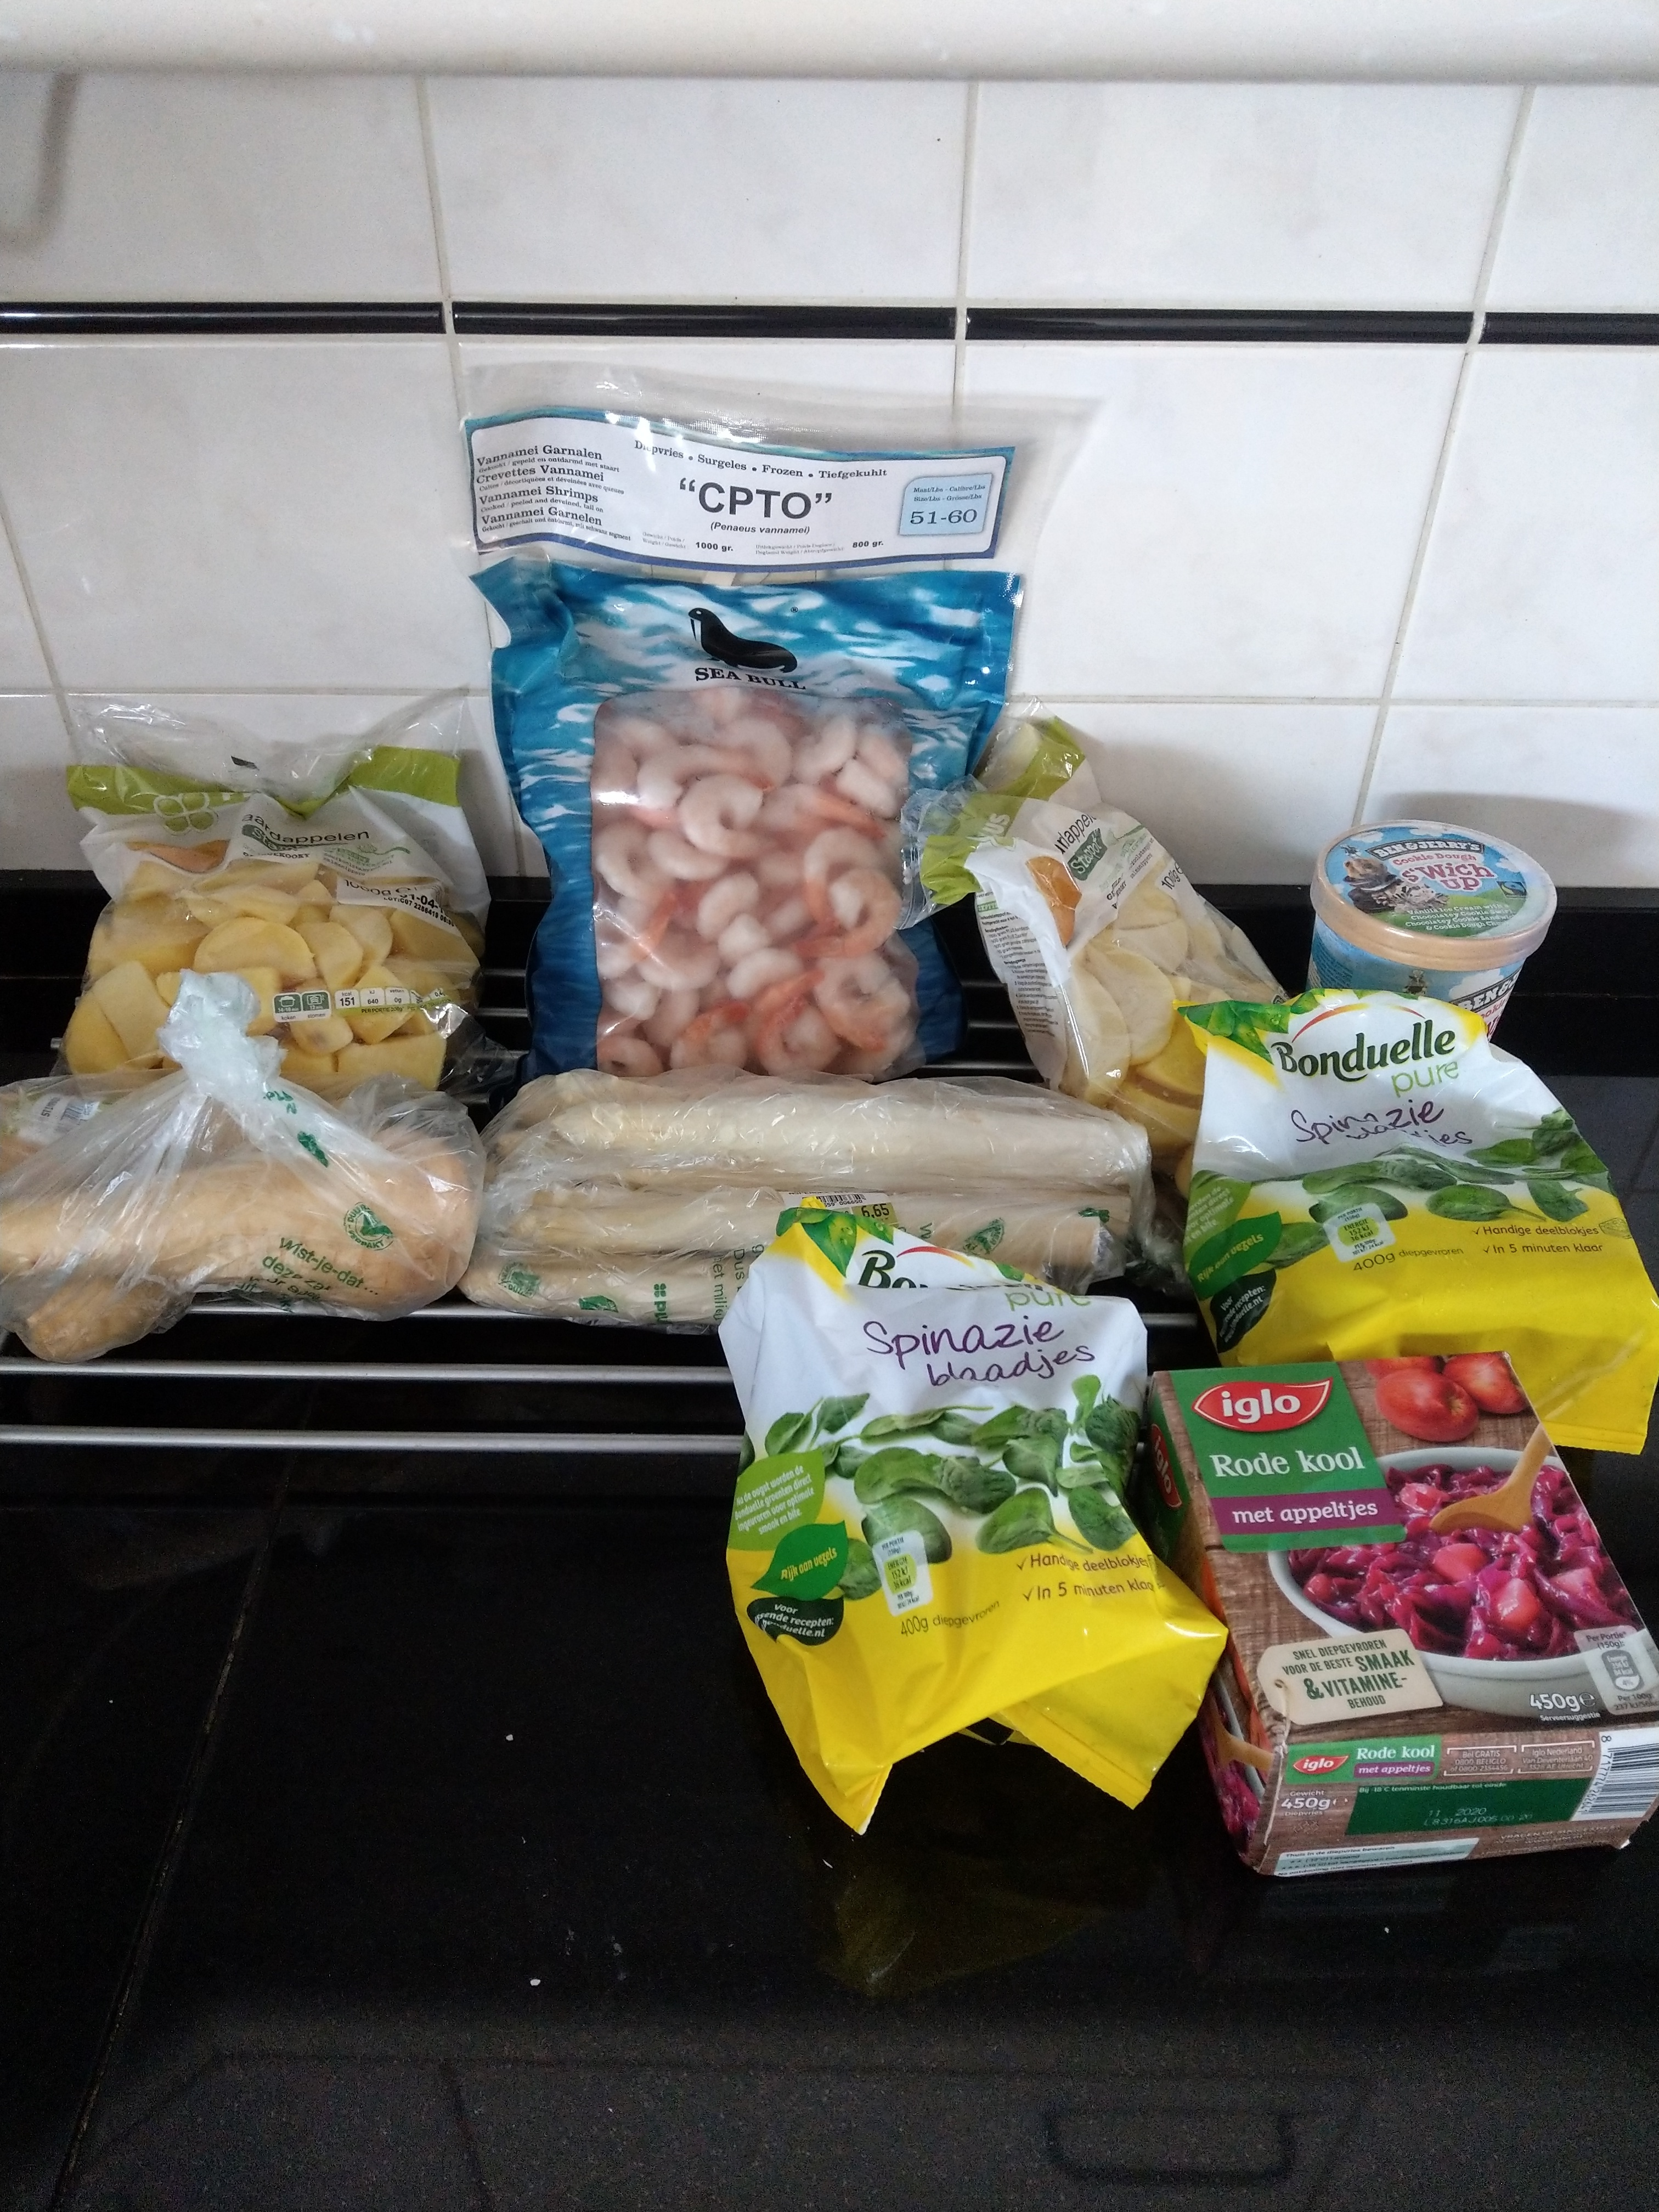 Ingredients semi-simple three course meal